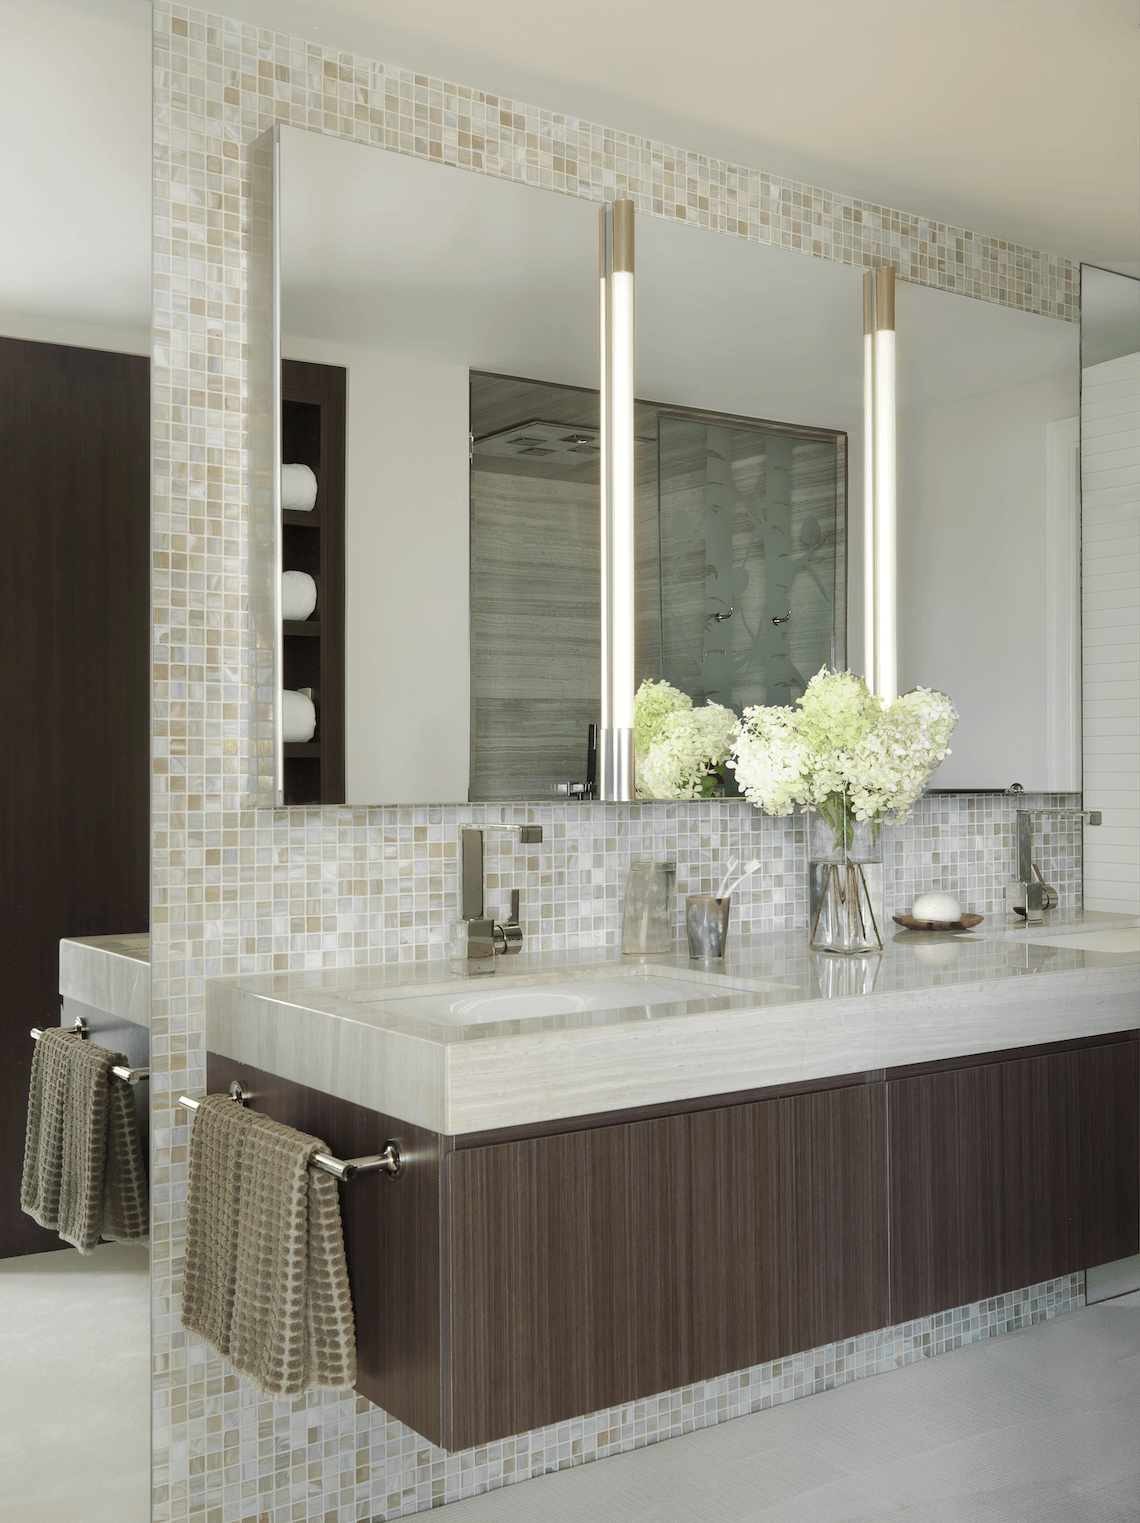 Floating Vanity in a Modern Master Bath BeckAllen Cabinetry